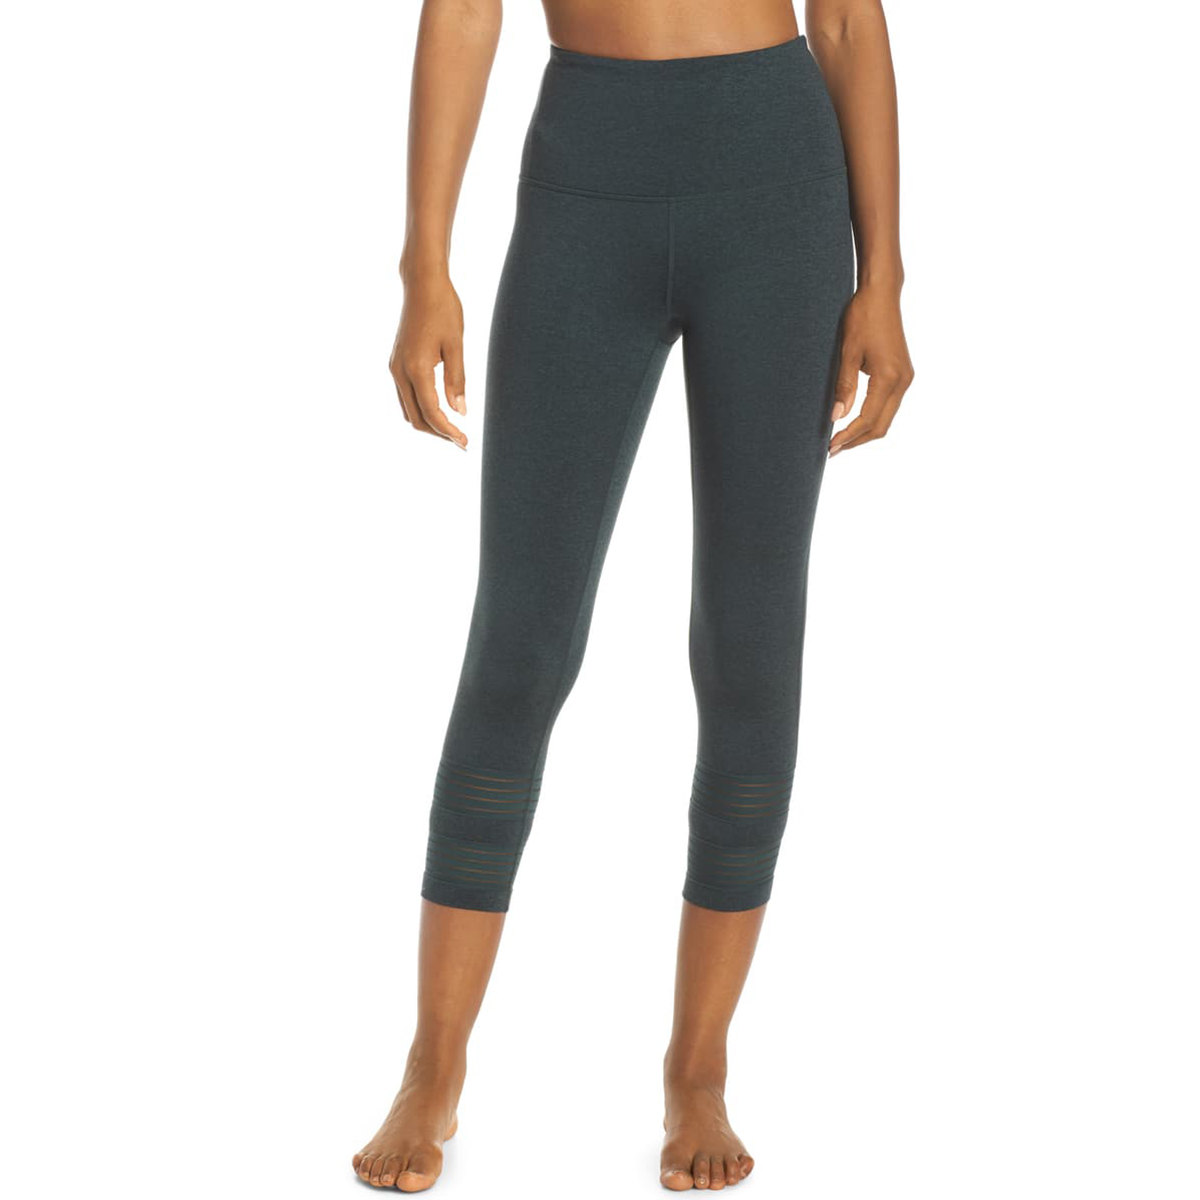 The Comfy Leggings You'll Wear Both to the Gym and Out to Brunch